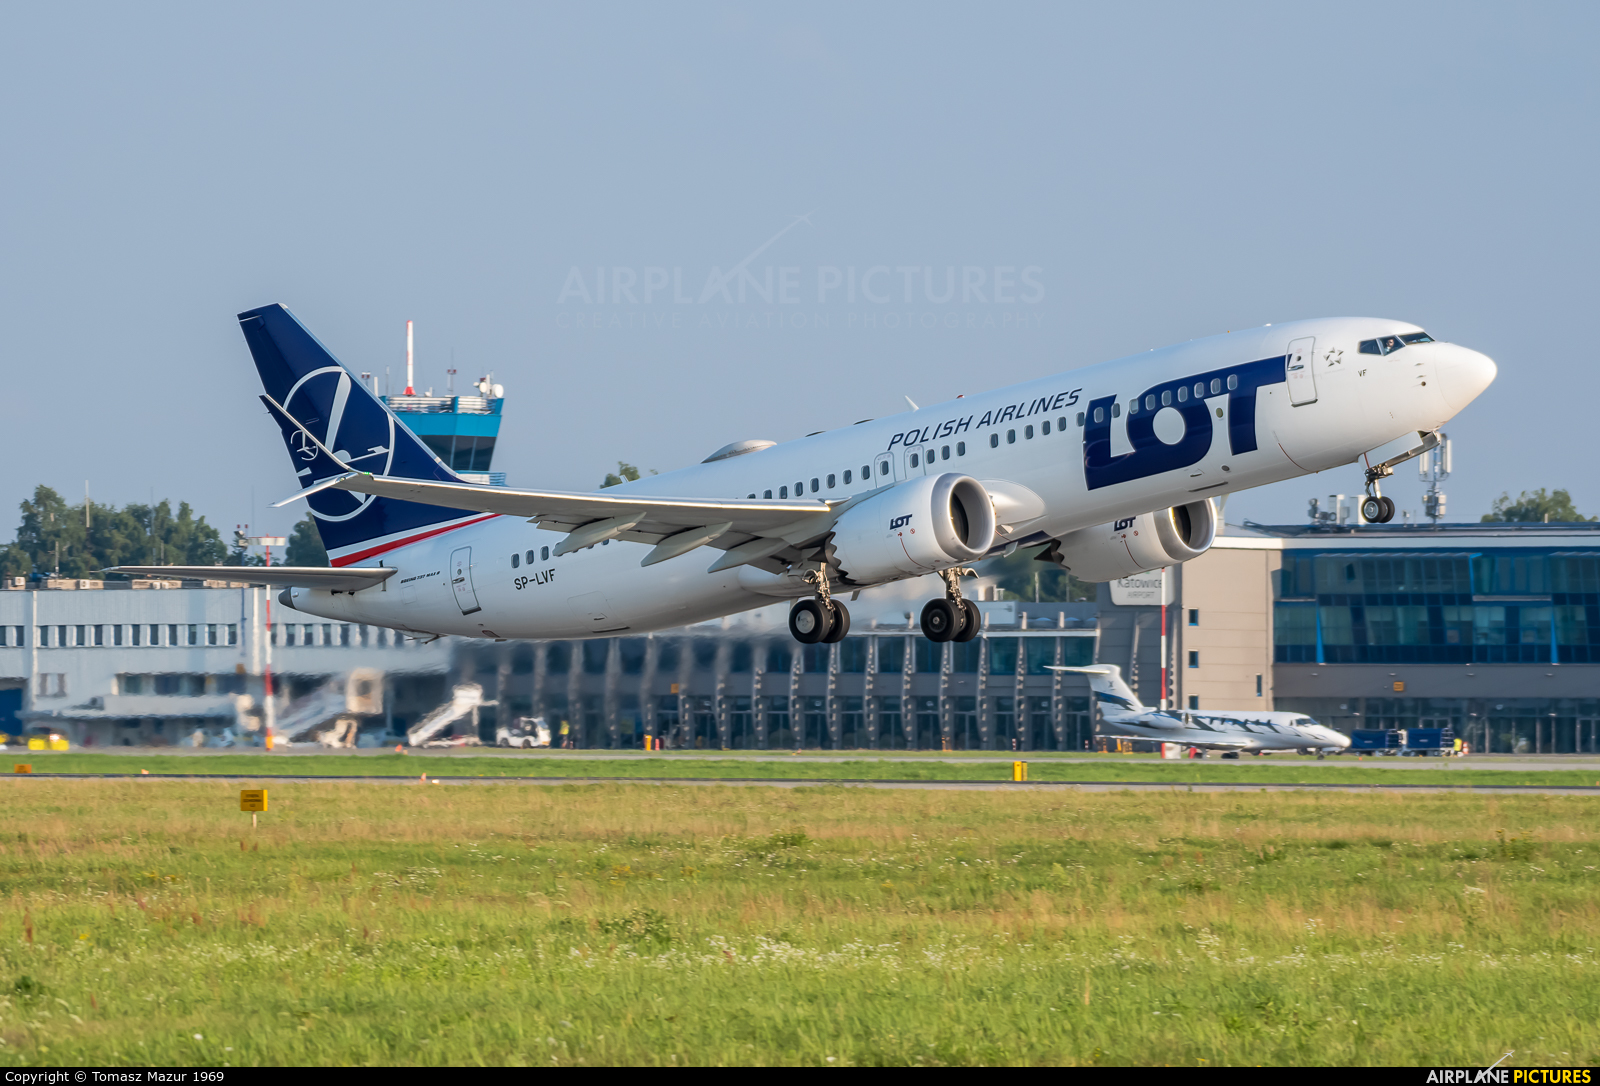 LOT - Polish Airlines SP-LVF aircraft at Katowice - Pyrzowice